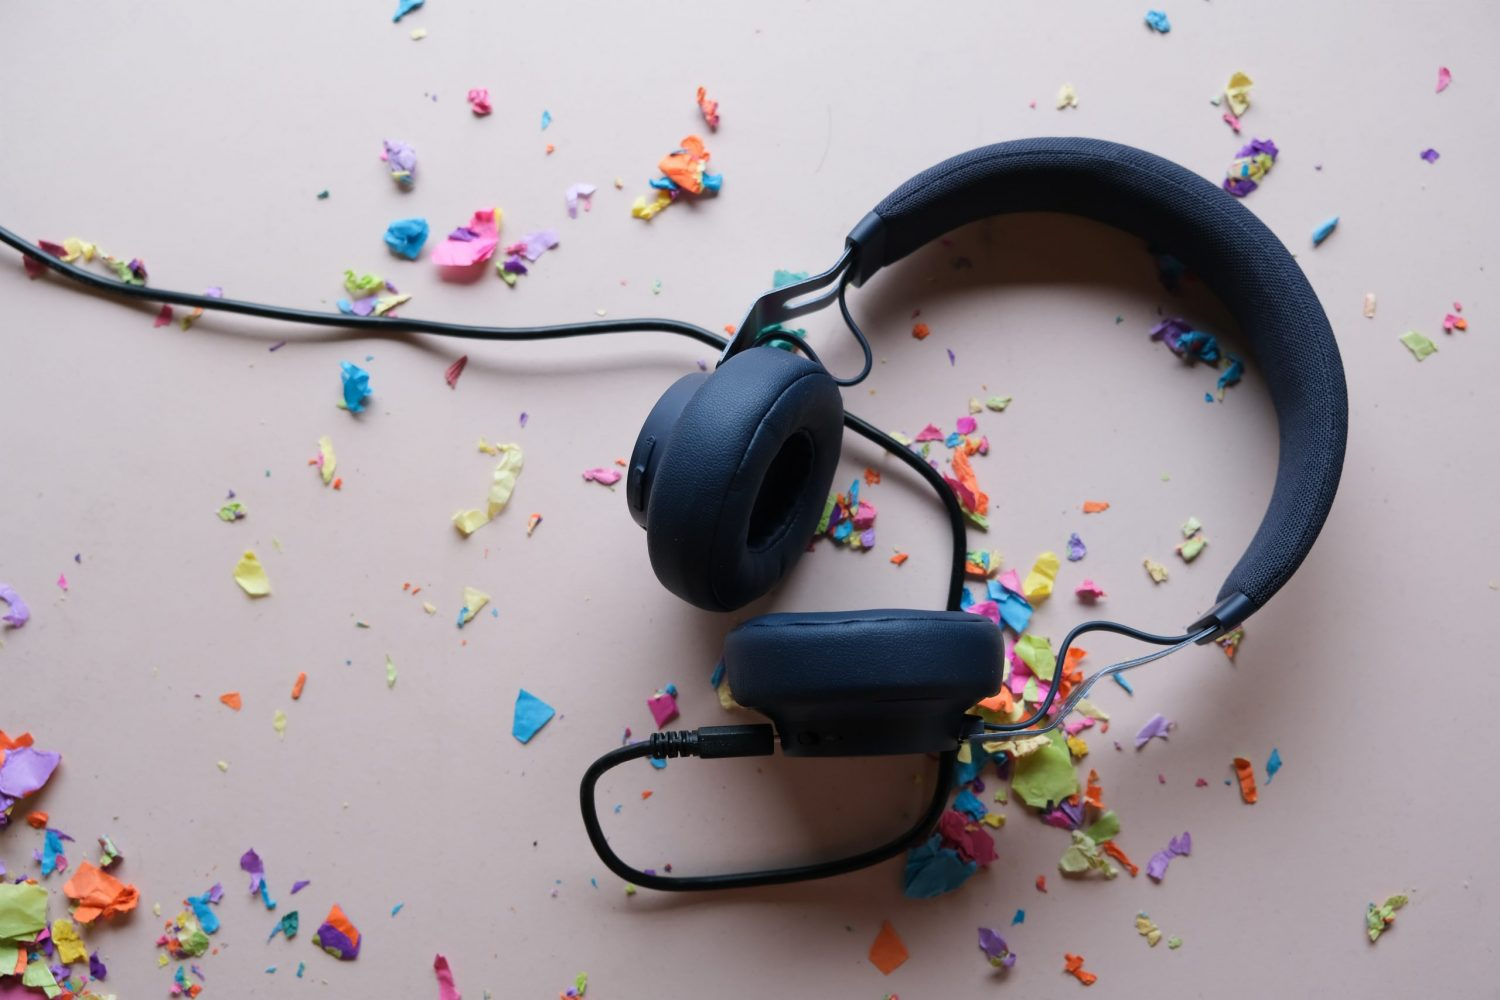 8 Podcasts That Will Make You a Better Writer